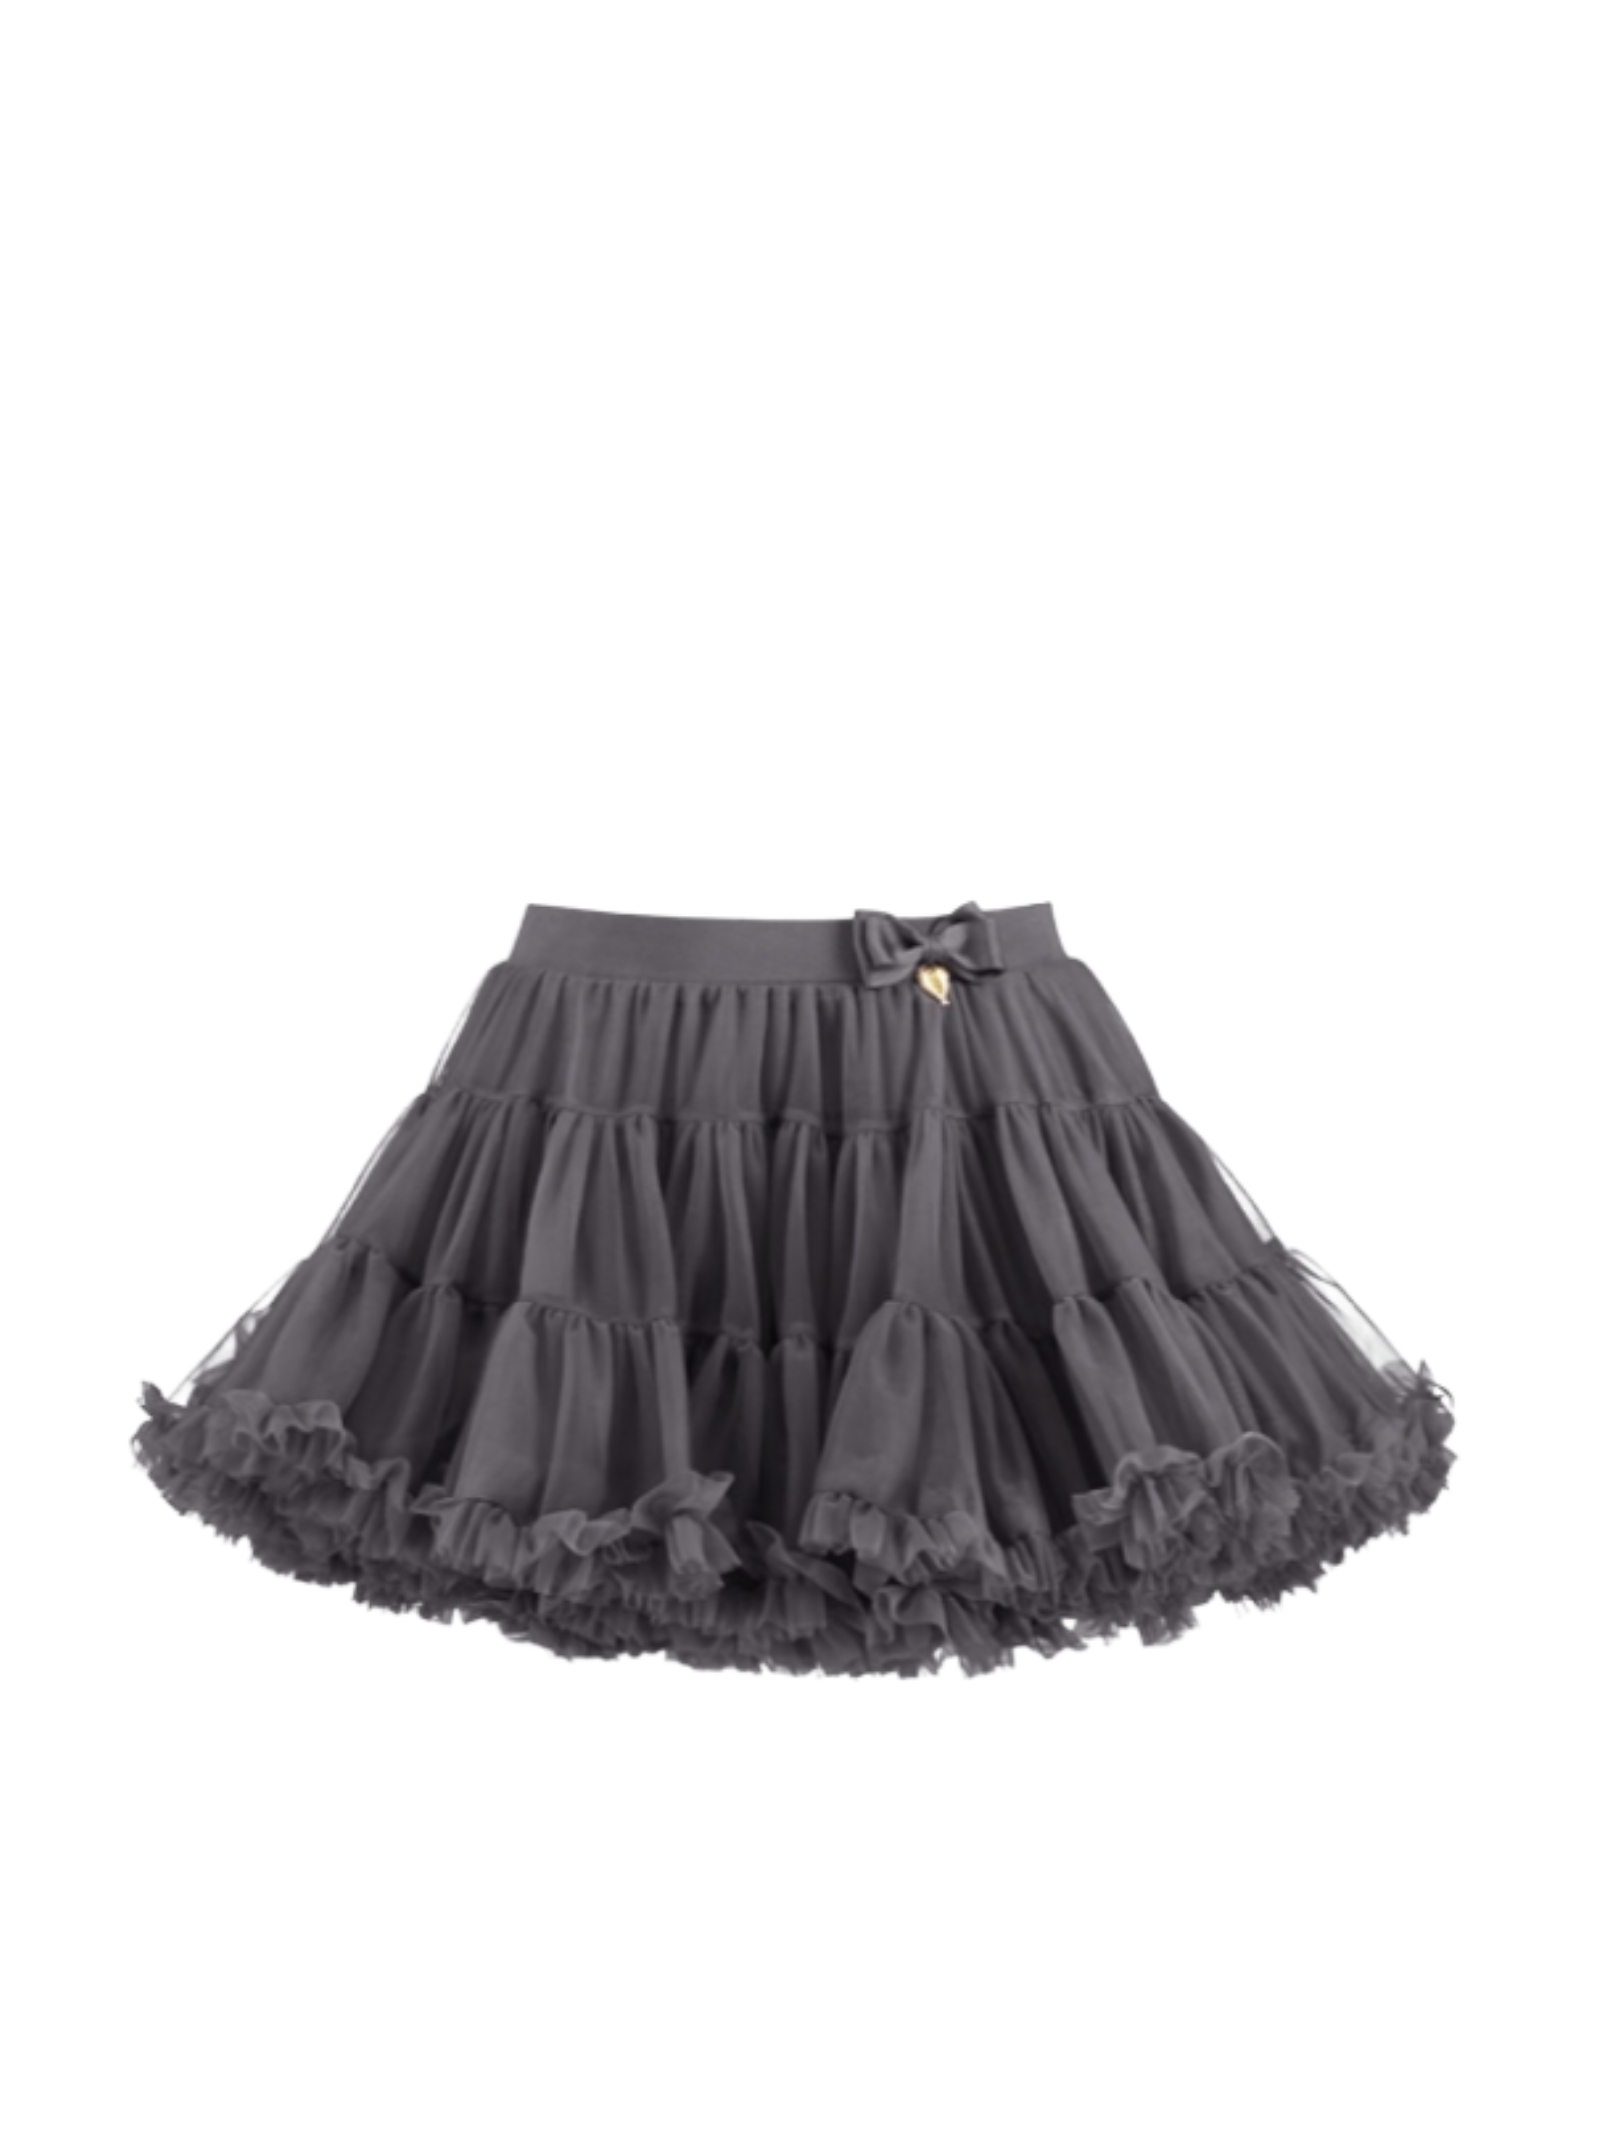 Gonna Bambina Tutu Pixie V Antracite ANGEL'S FACE | Gonne | PIXIEANTHRACITE